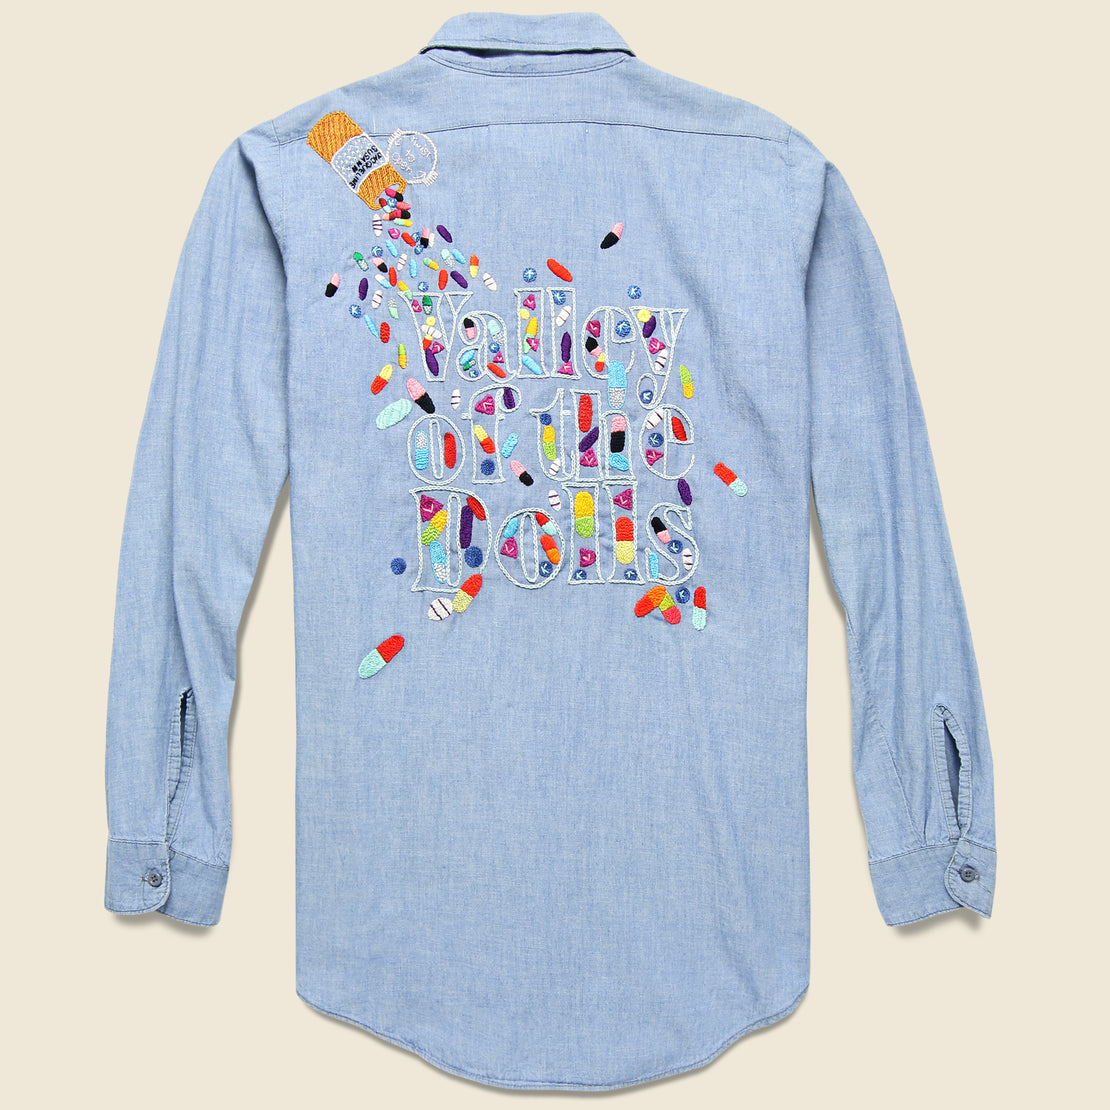 Jolly Knot Club Embroidered Chambray Shirt - Valley of the Dolls